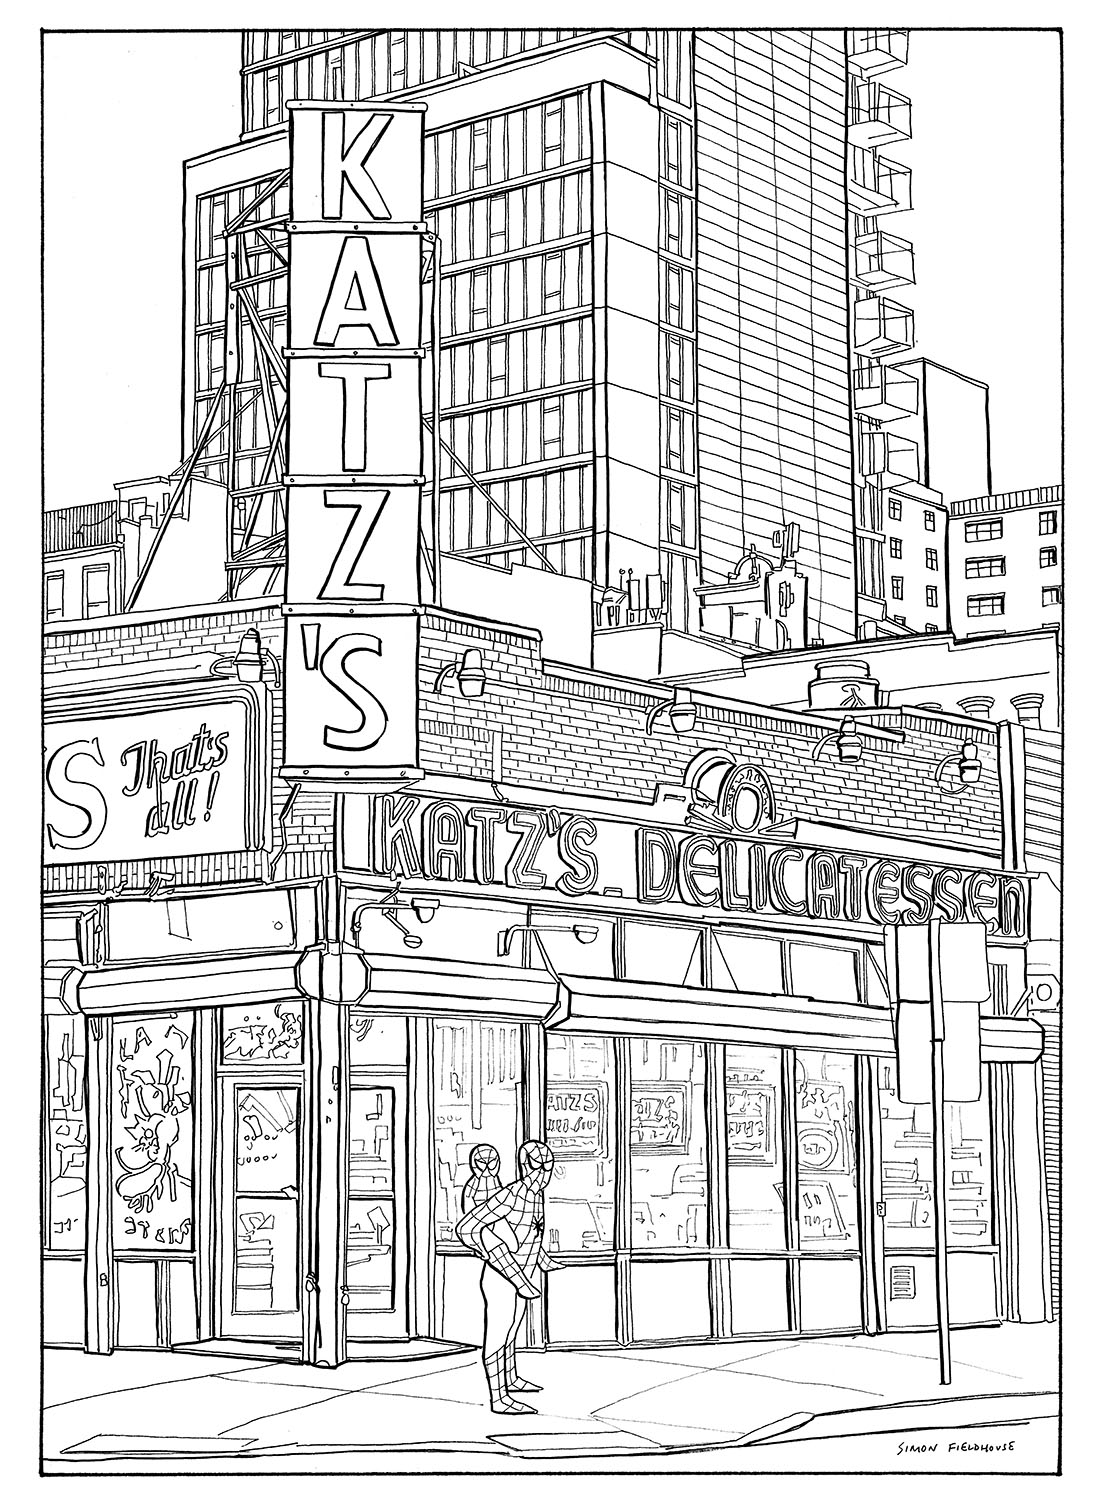 Katzs Delicatessen New York